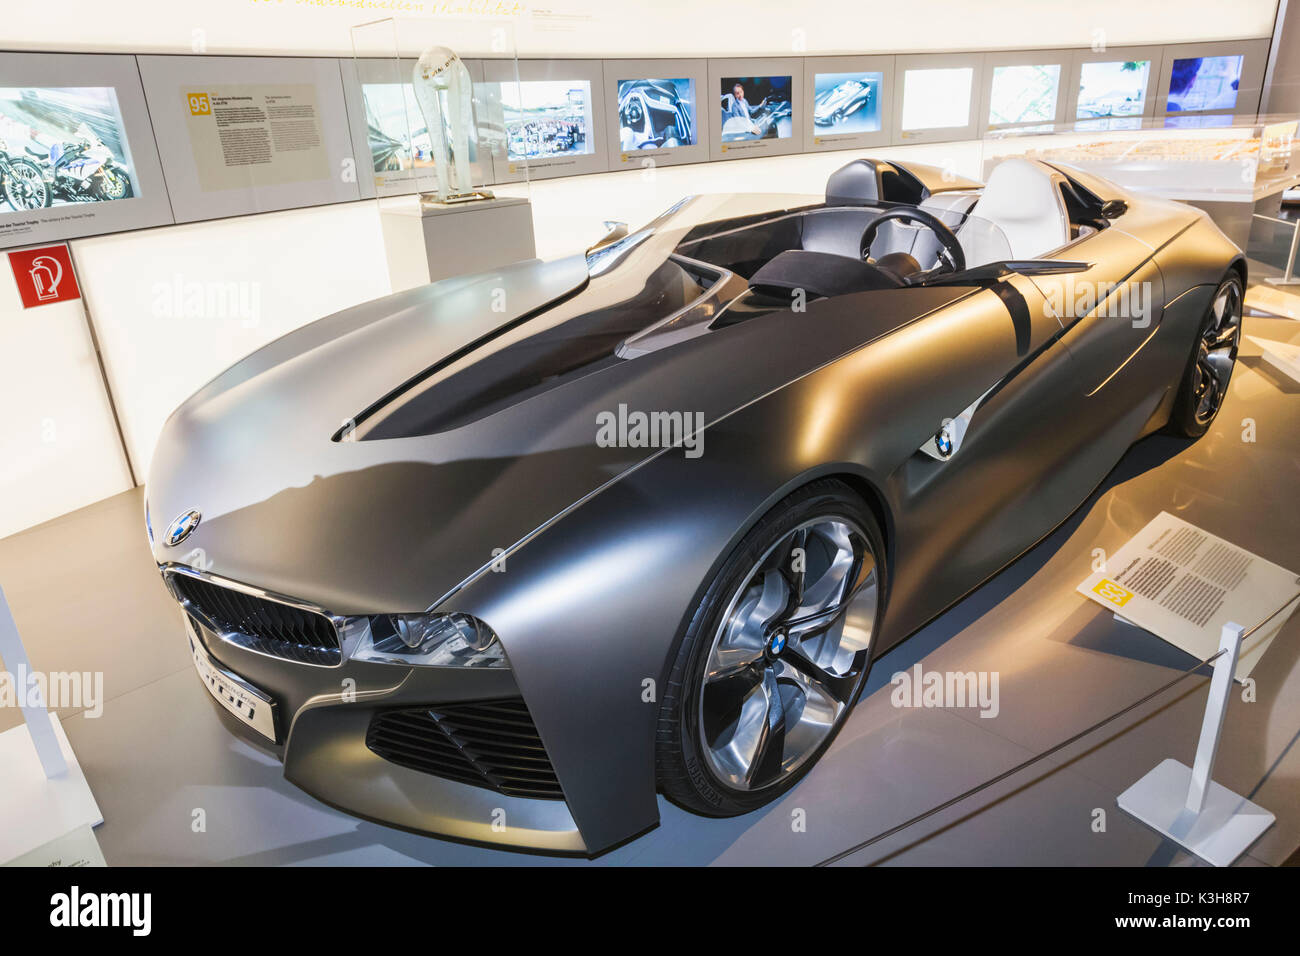 Germany, Bavaria, Munich, BMW Museum, Display of BMW Vision Connected Drive Cars dated 2011 - Stock Image